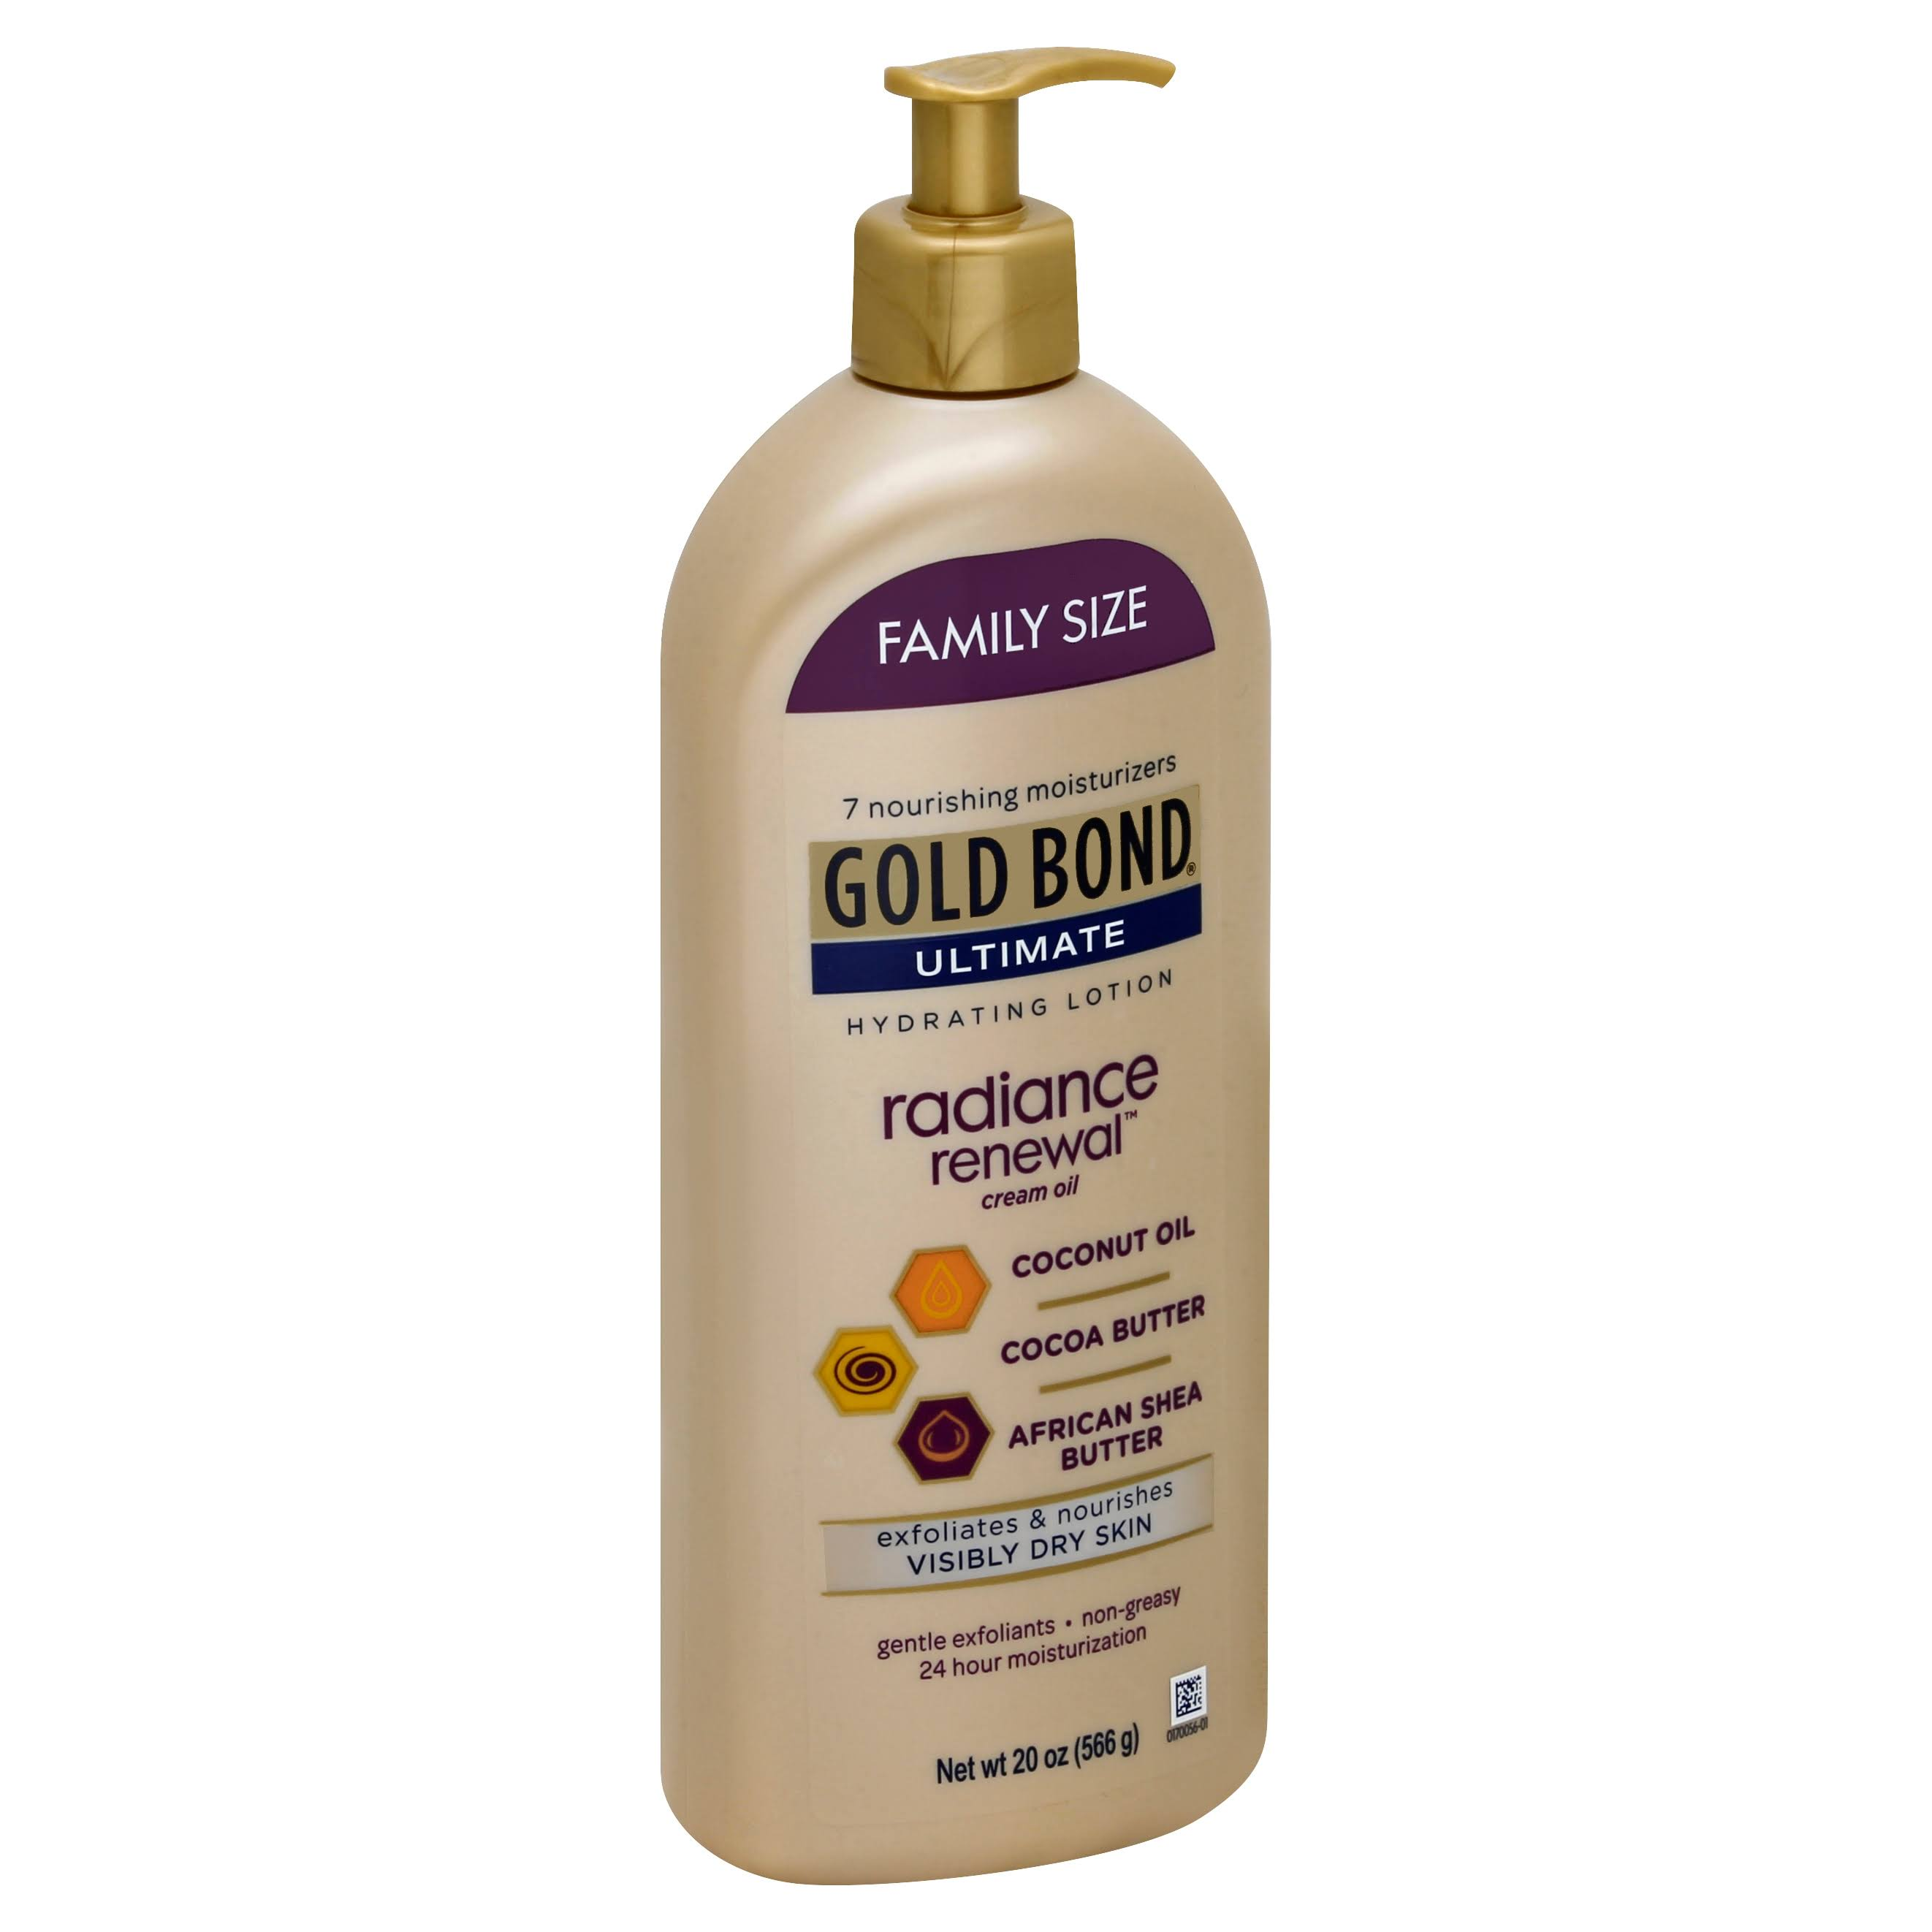 Gold Bond Ultimate Radiance Renewal Hand And Body Lotion - 20oz